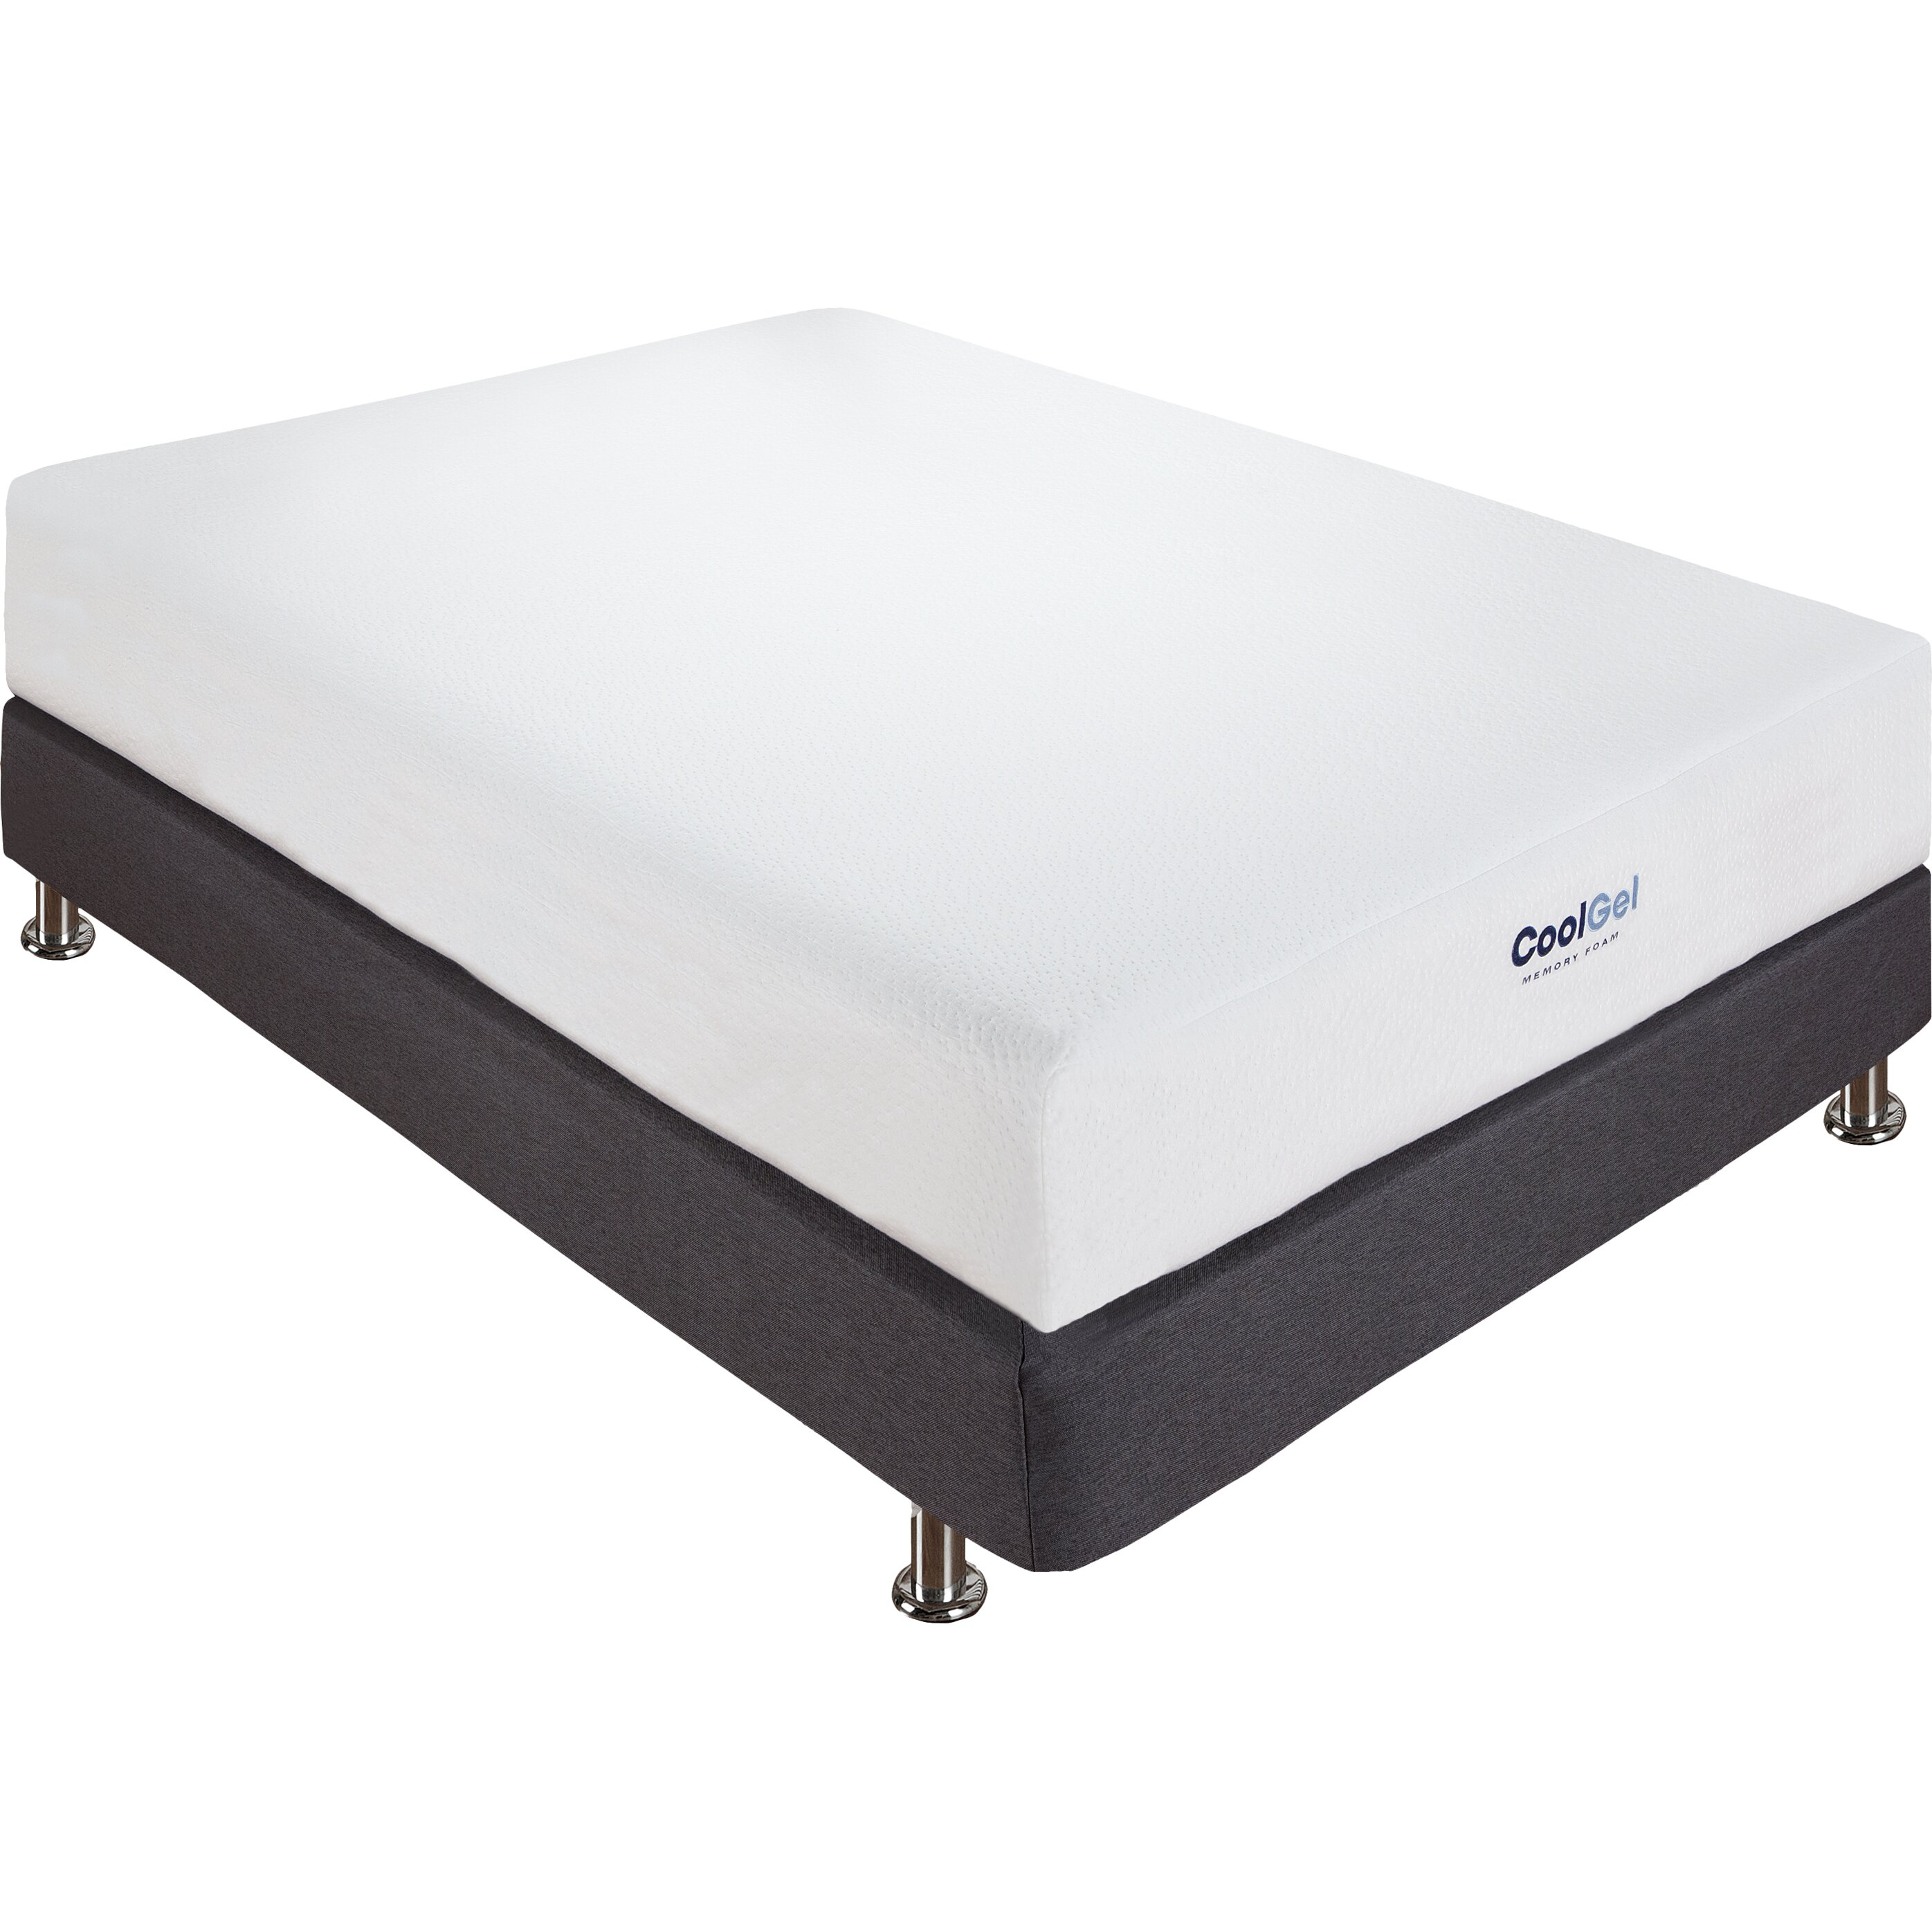 "Classic Brands 8"" Gel Memory Foam Mattress & Reviews"